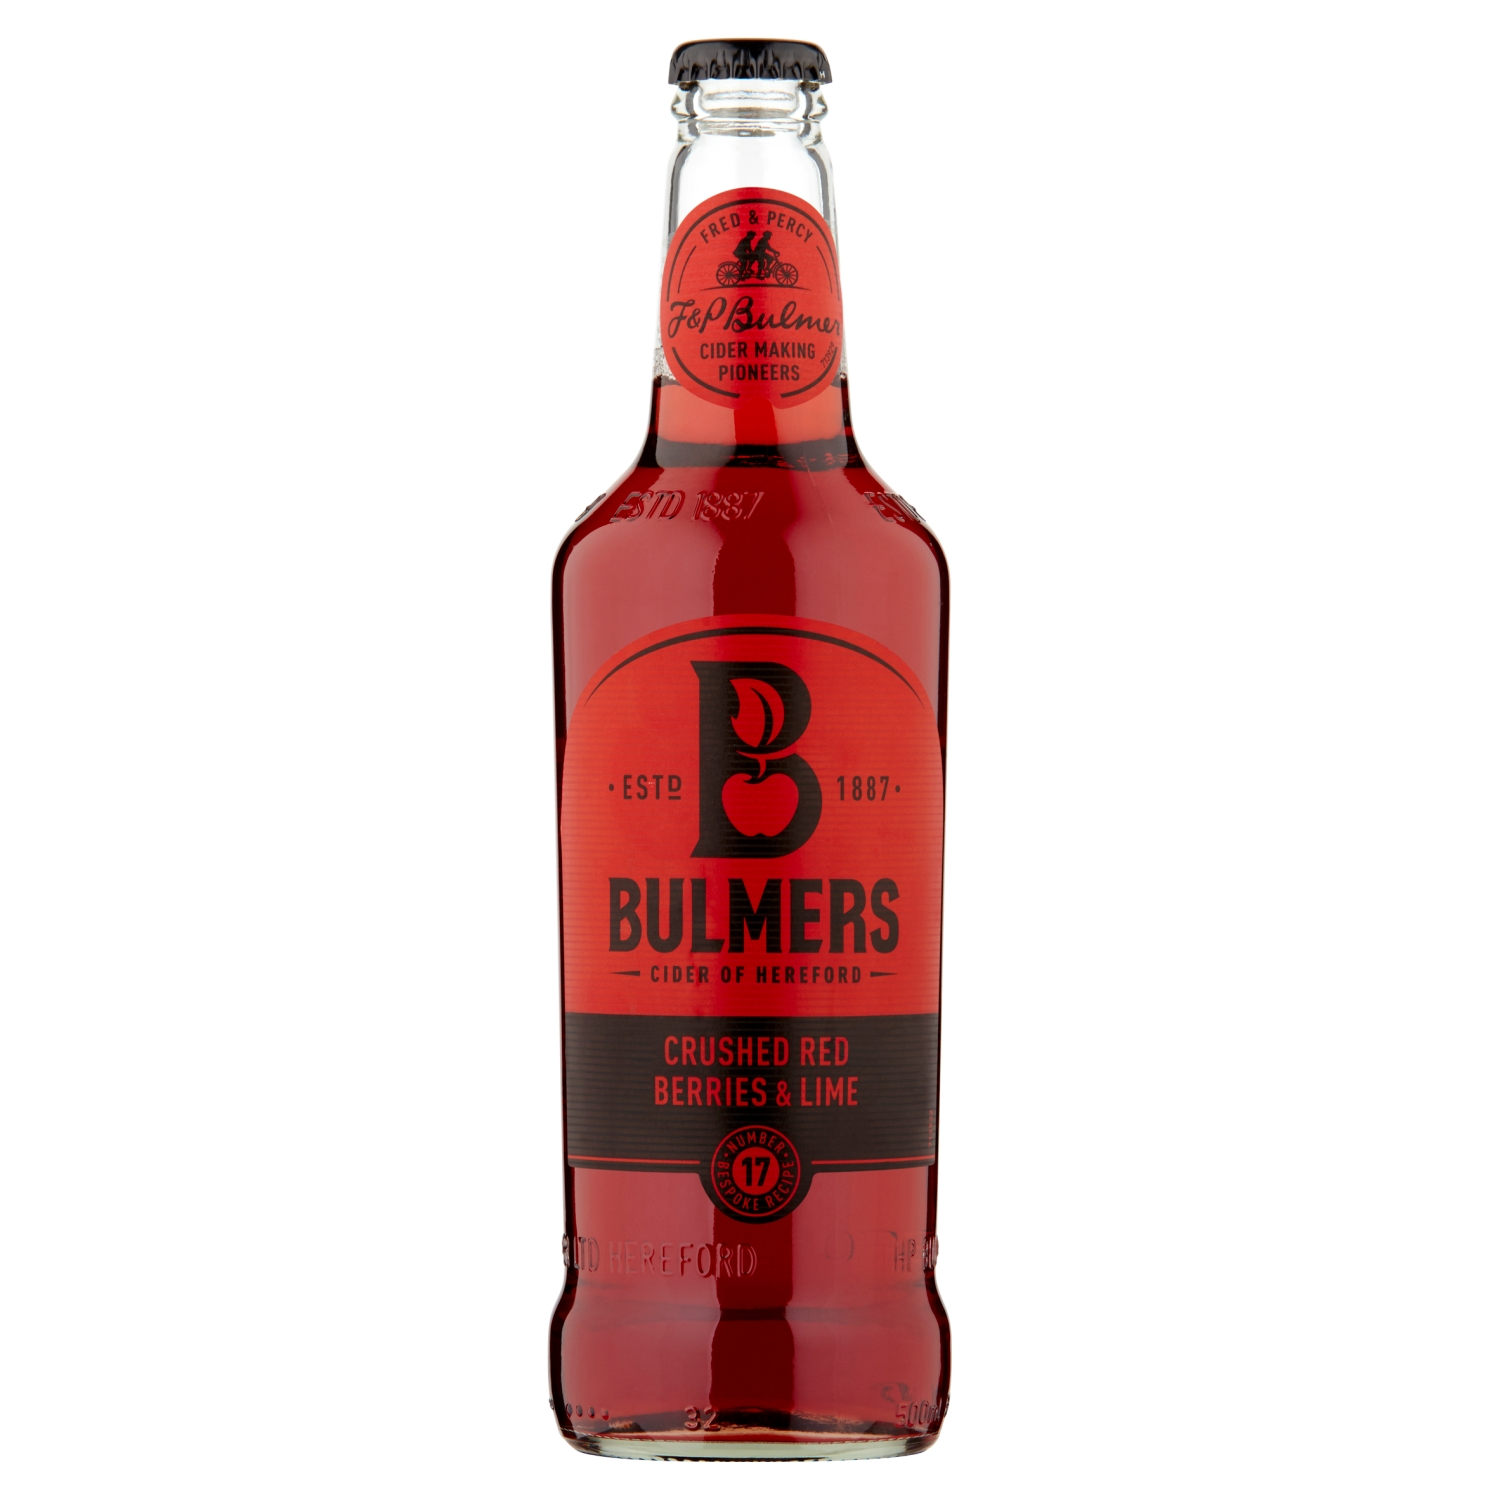 Bulmers Crushed Red Berries & Lime Cider 500ml Bottle